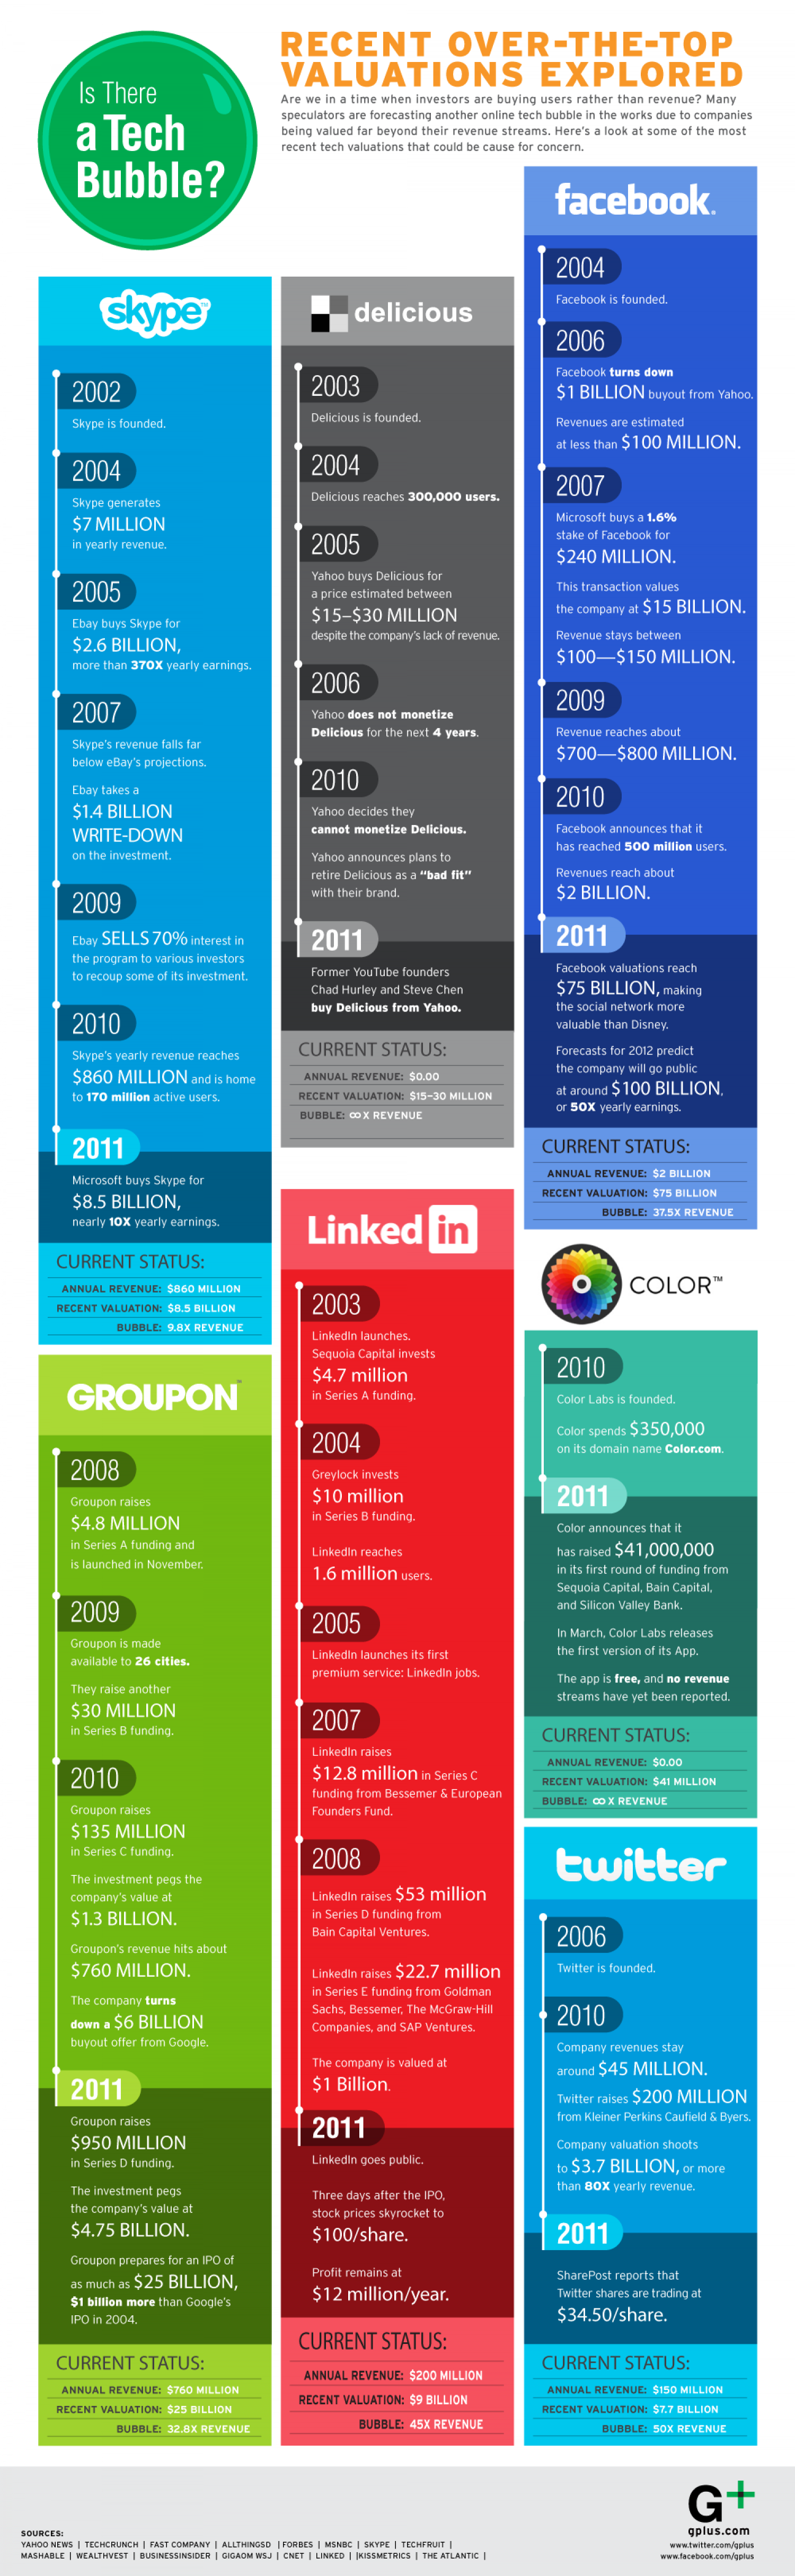 Is There a Tech Bubble? Infographic